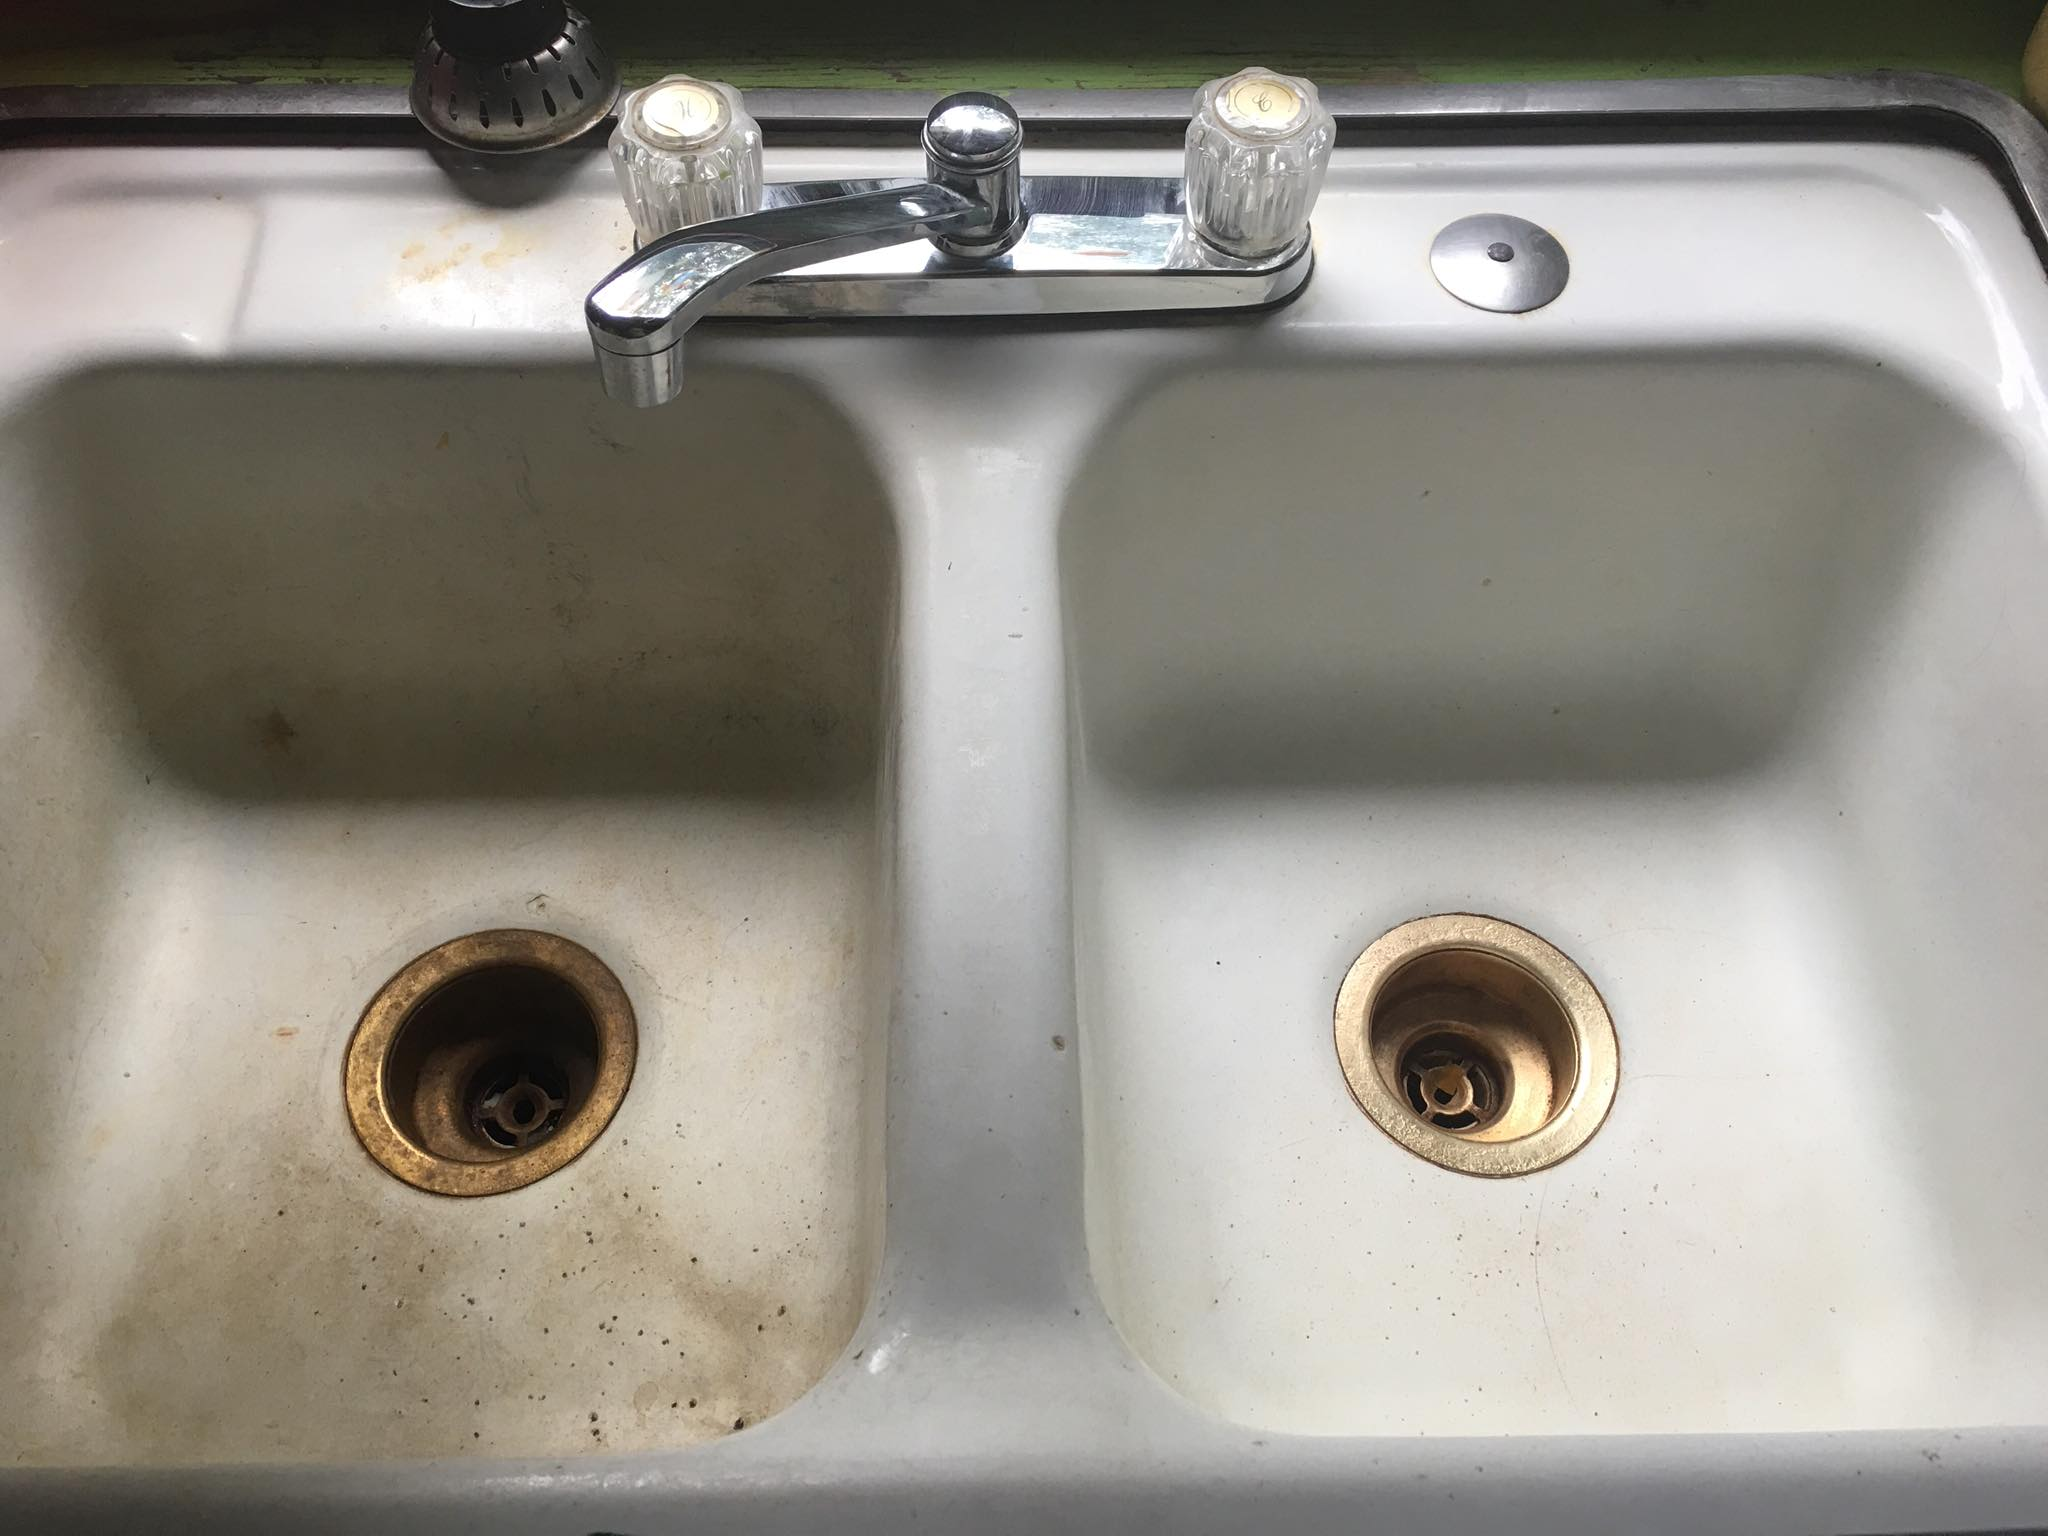 how to clean kitchen sinks - image 3 - anactacia m submission